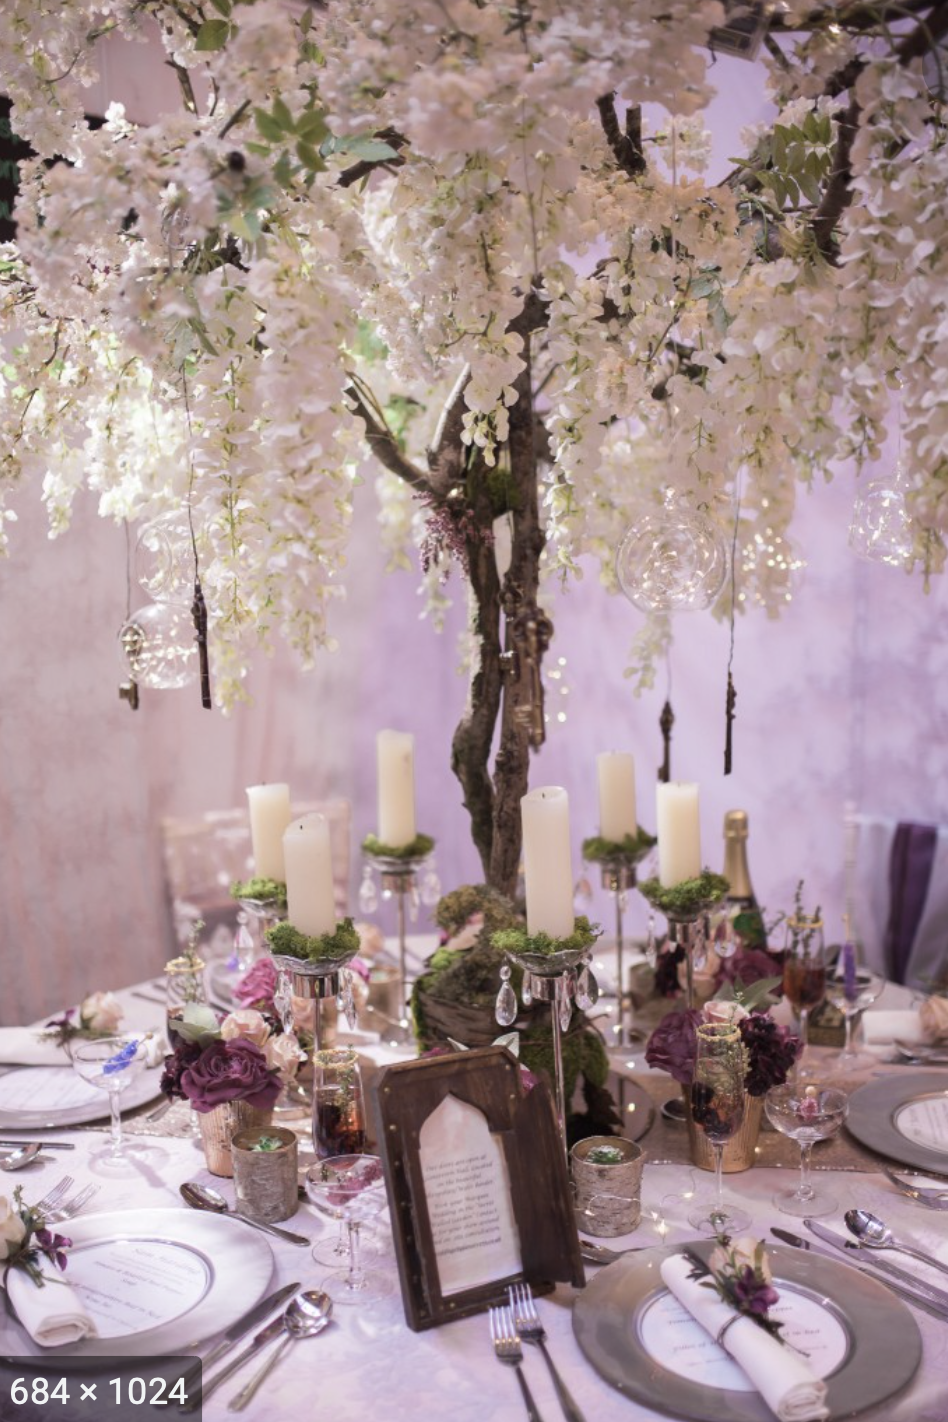 Pin By Charlotte Humphreys On Table Settings Wedding Decorations Outdoor Wedding Decorations Themed Wedding Decorations